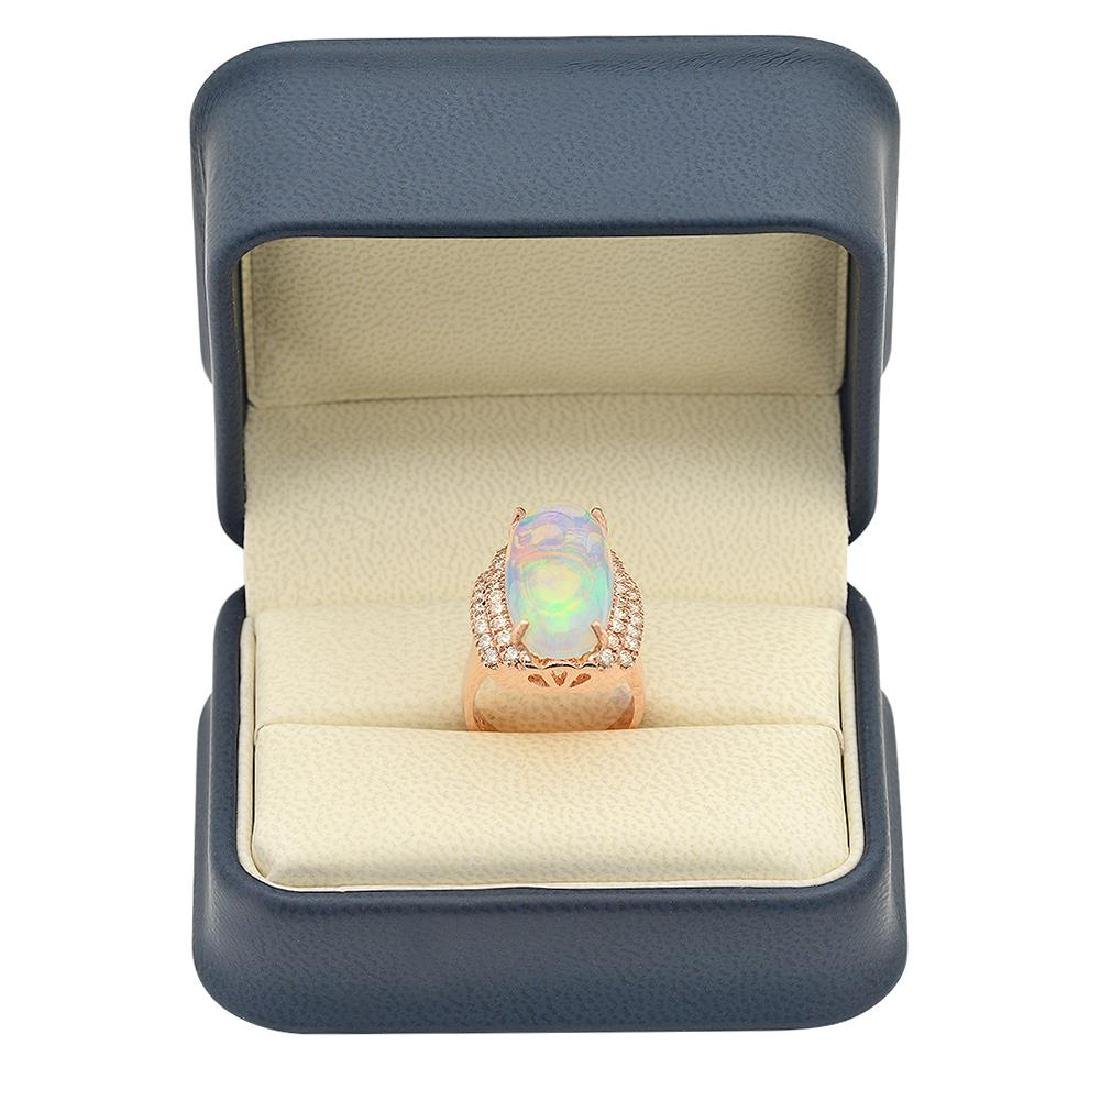 14K Gold 8.81ct Opal 1.10ct Diamond Ring - 4